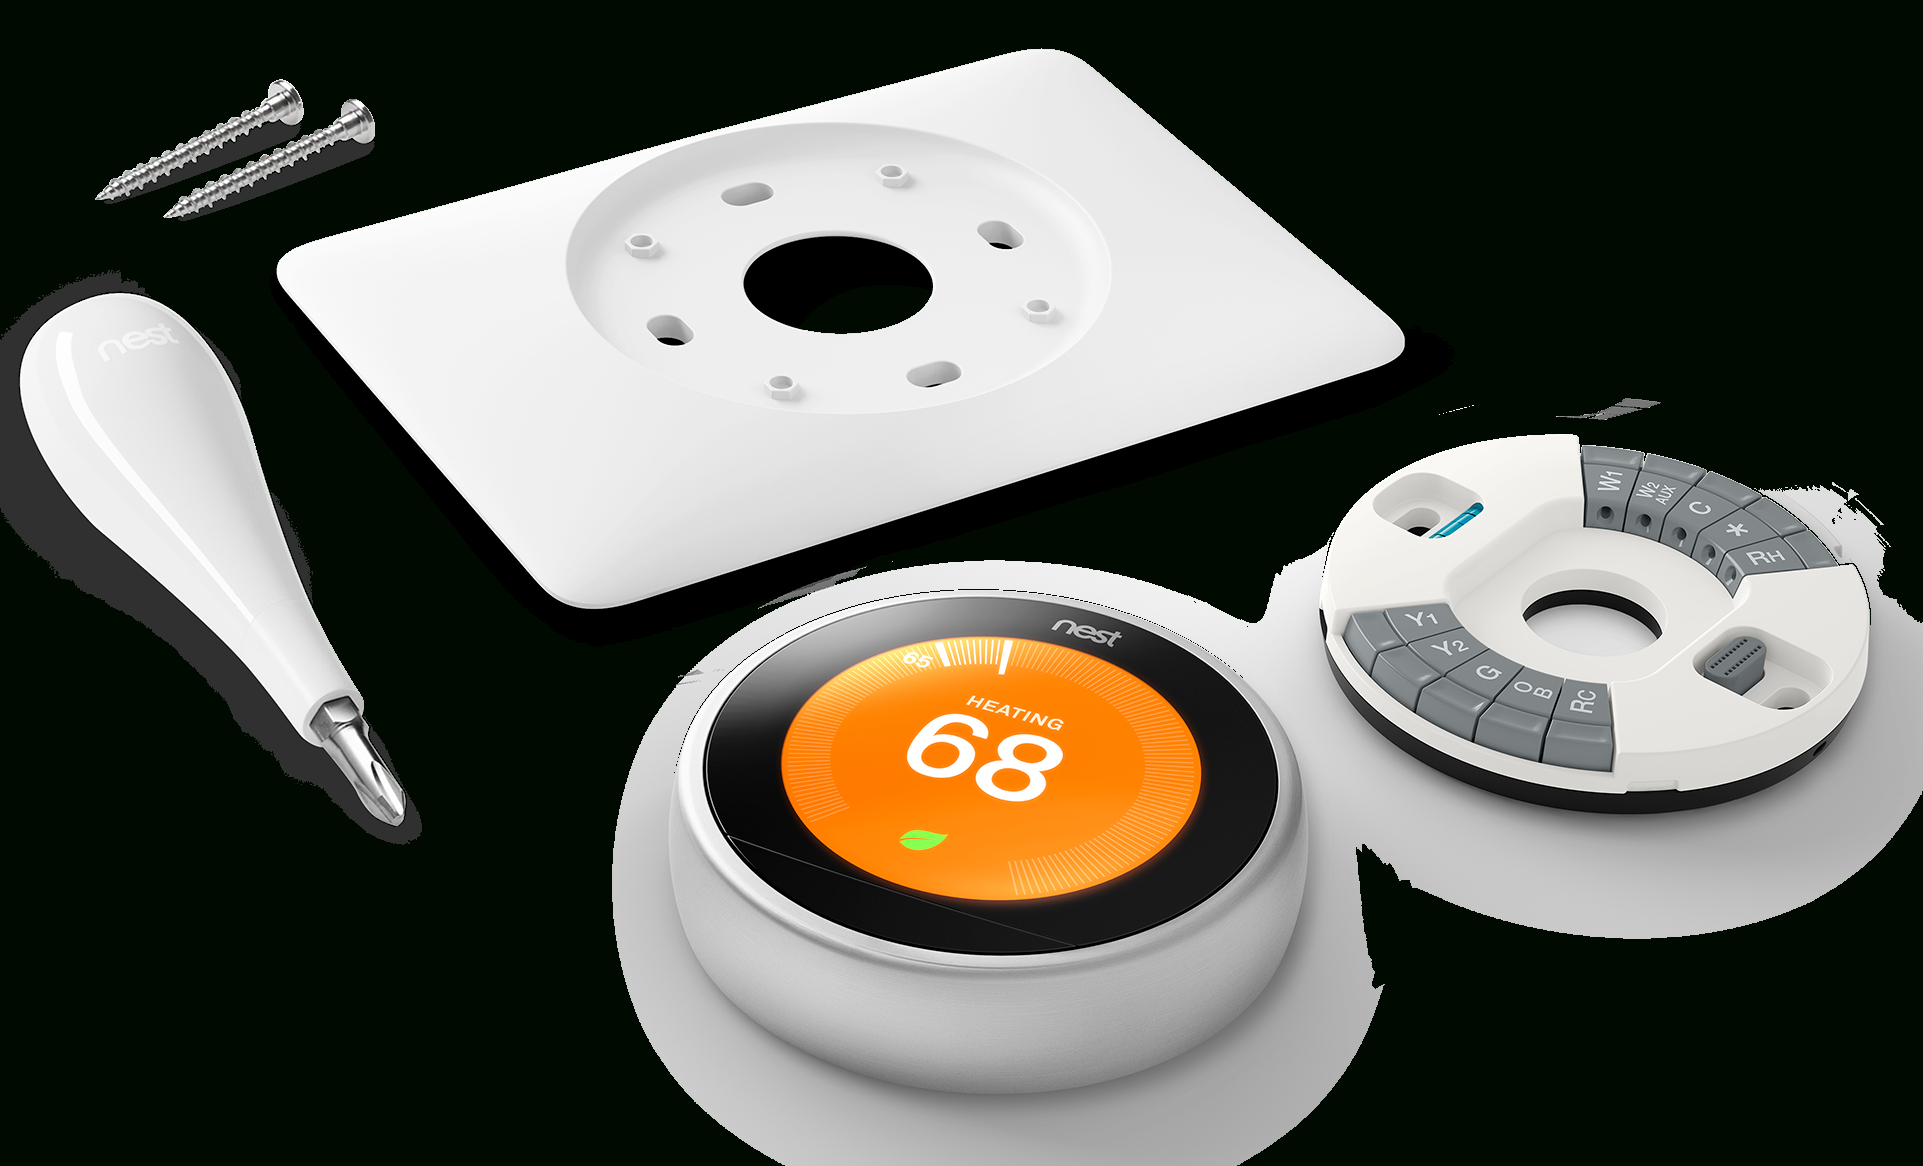 How To Install Your Nest Thermostat - Nest Thermostat Canada Wiring Diagram